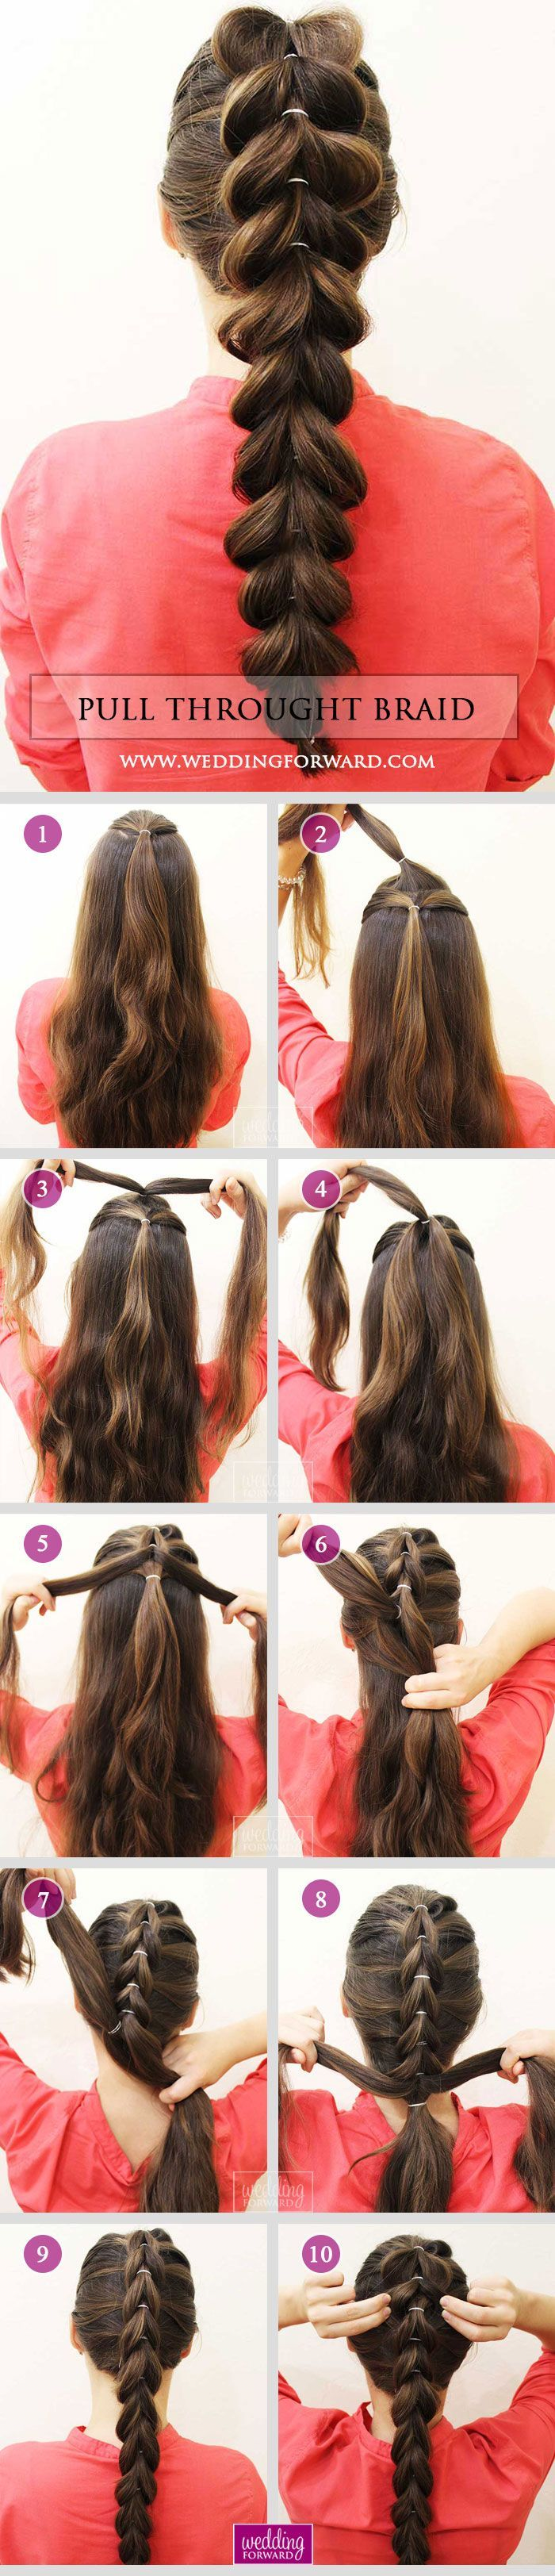 36 Braided Wedding Hair Ideas You Will Love❤ Stylish Pull Throught Braid at home is very easy! See at this tutorial and DIY step by step with us. viktoria_beaty via Instagram for WeddingForward. See more braided hairstyles here: http://www.weddingforward.com/braided-wedding-hair/ #weddings #hairstyles